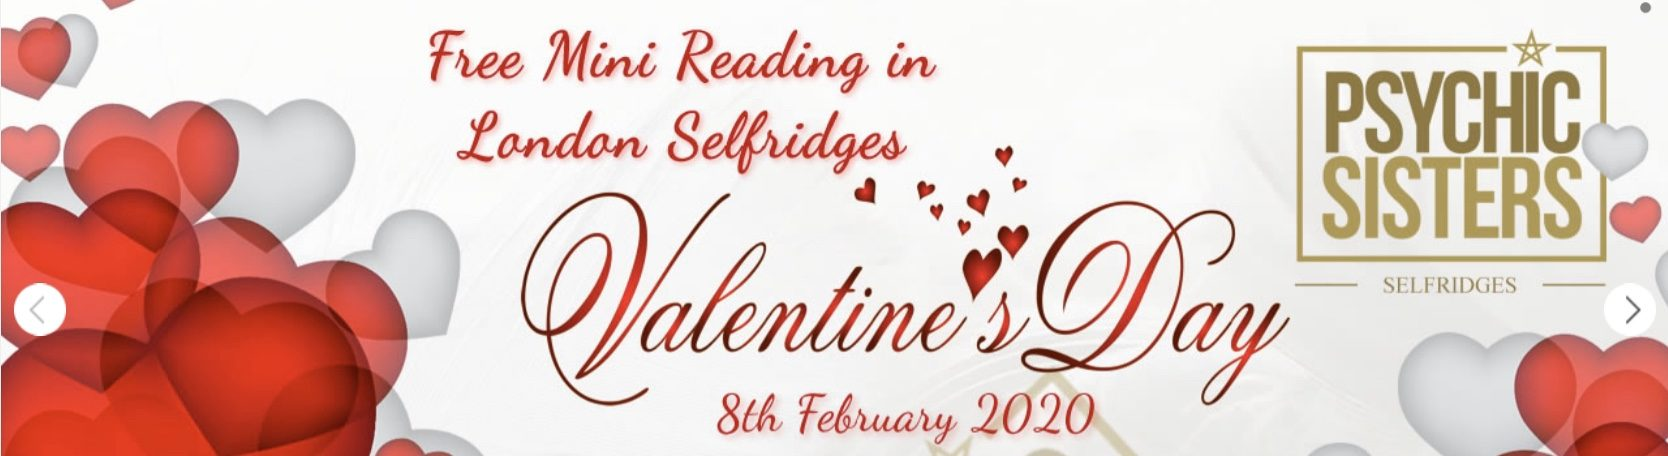 Free Mini Valentines Readings